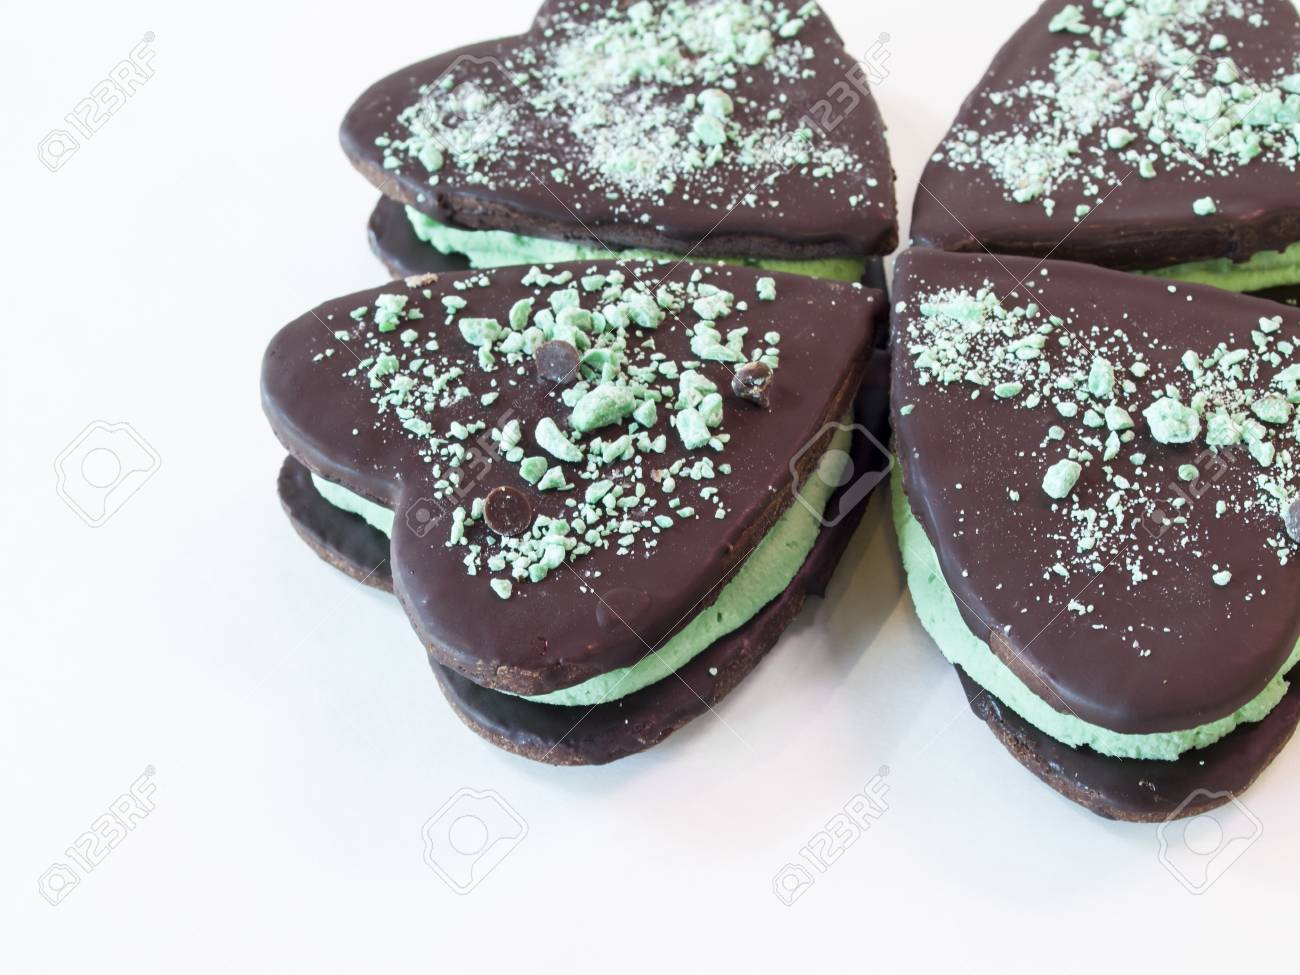 Chocolate cookies with mint filling on white background. Stock Photo - 14047393